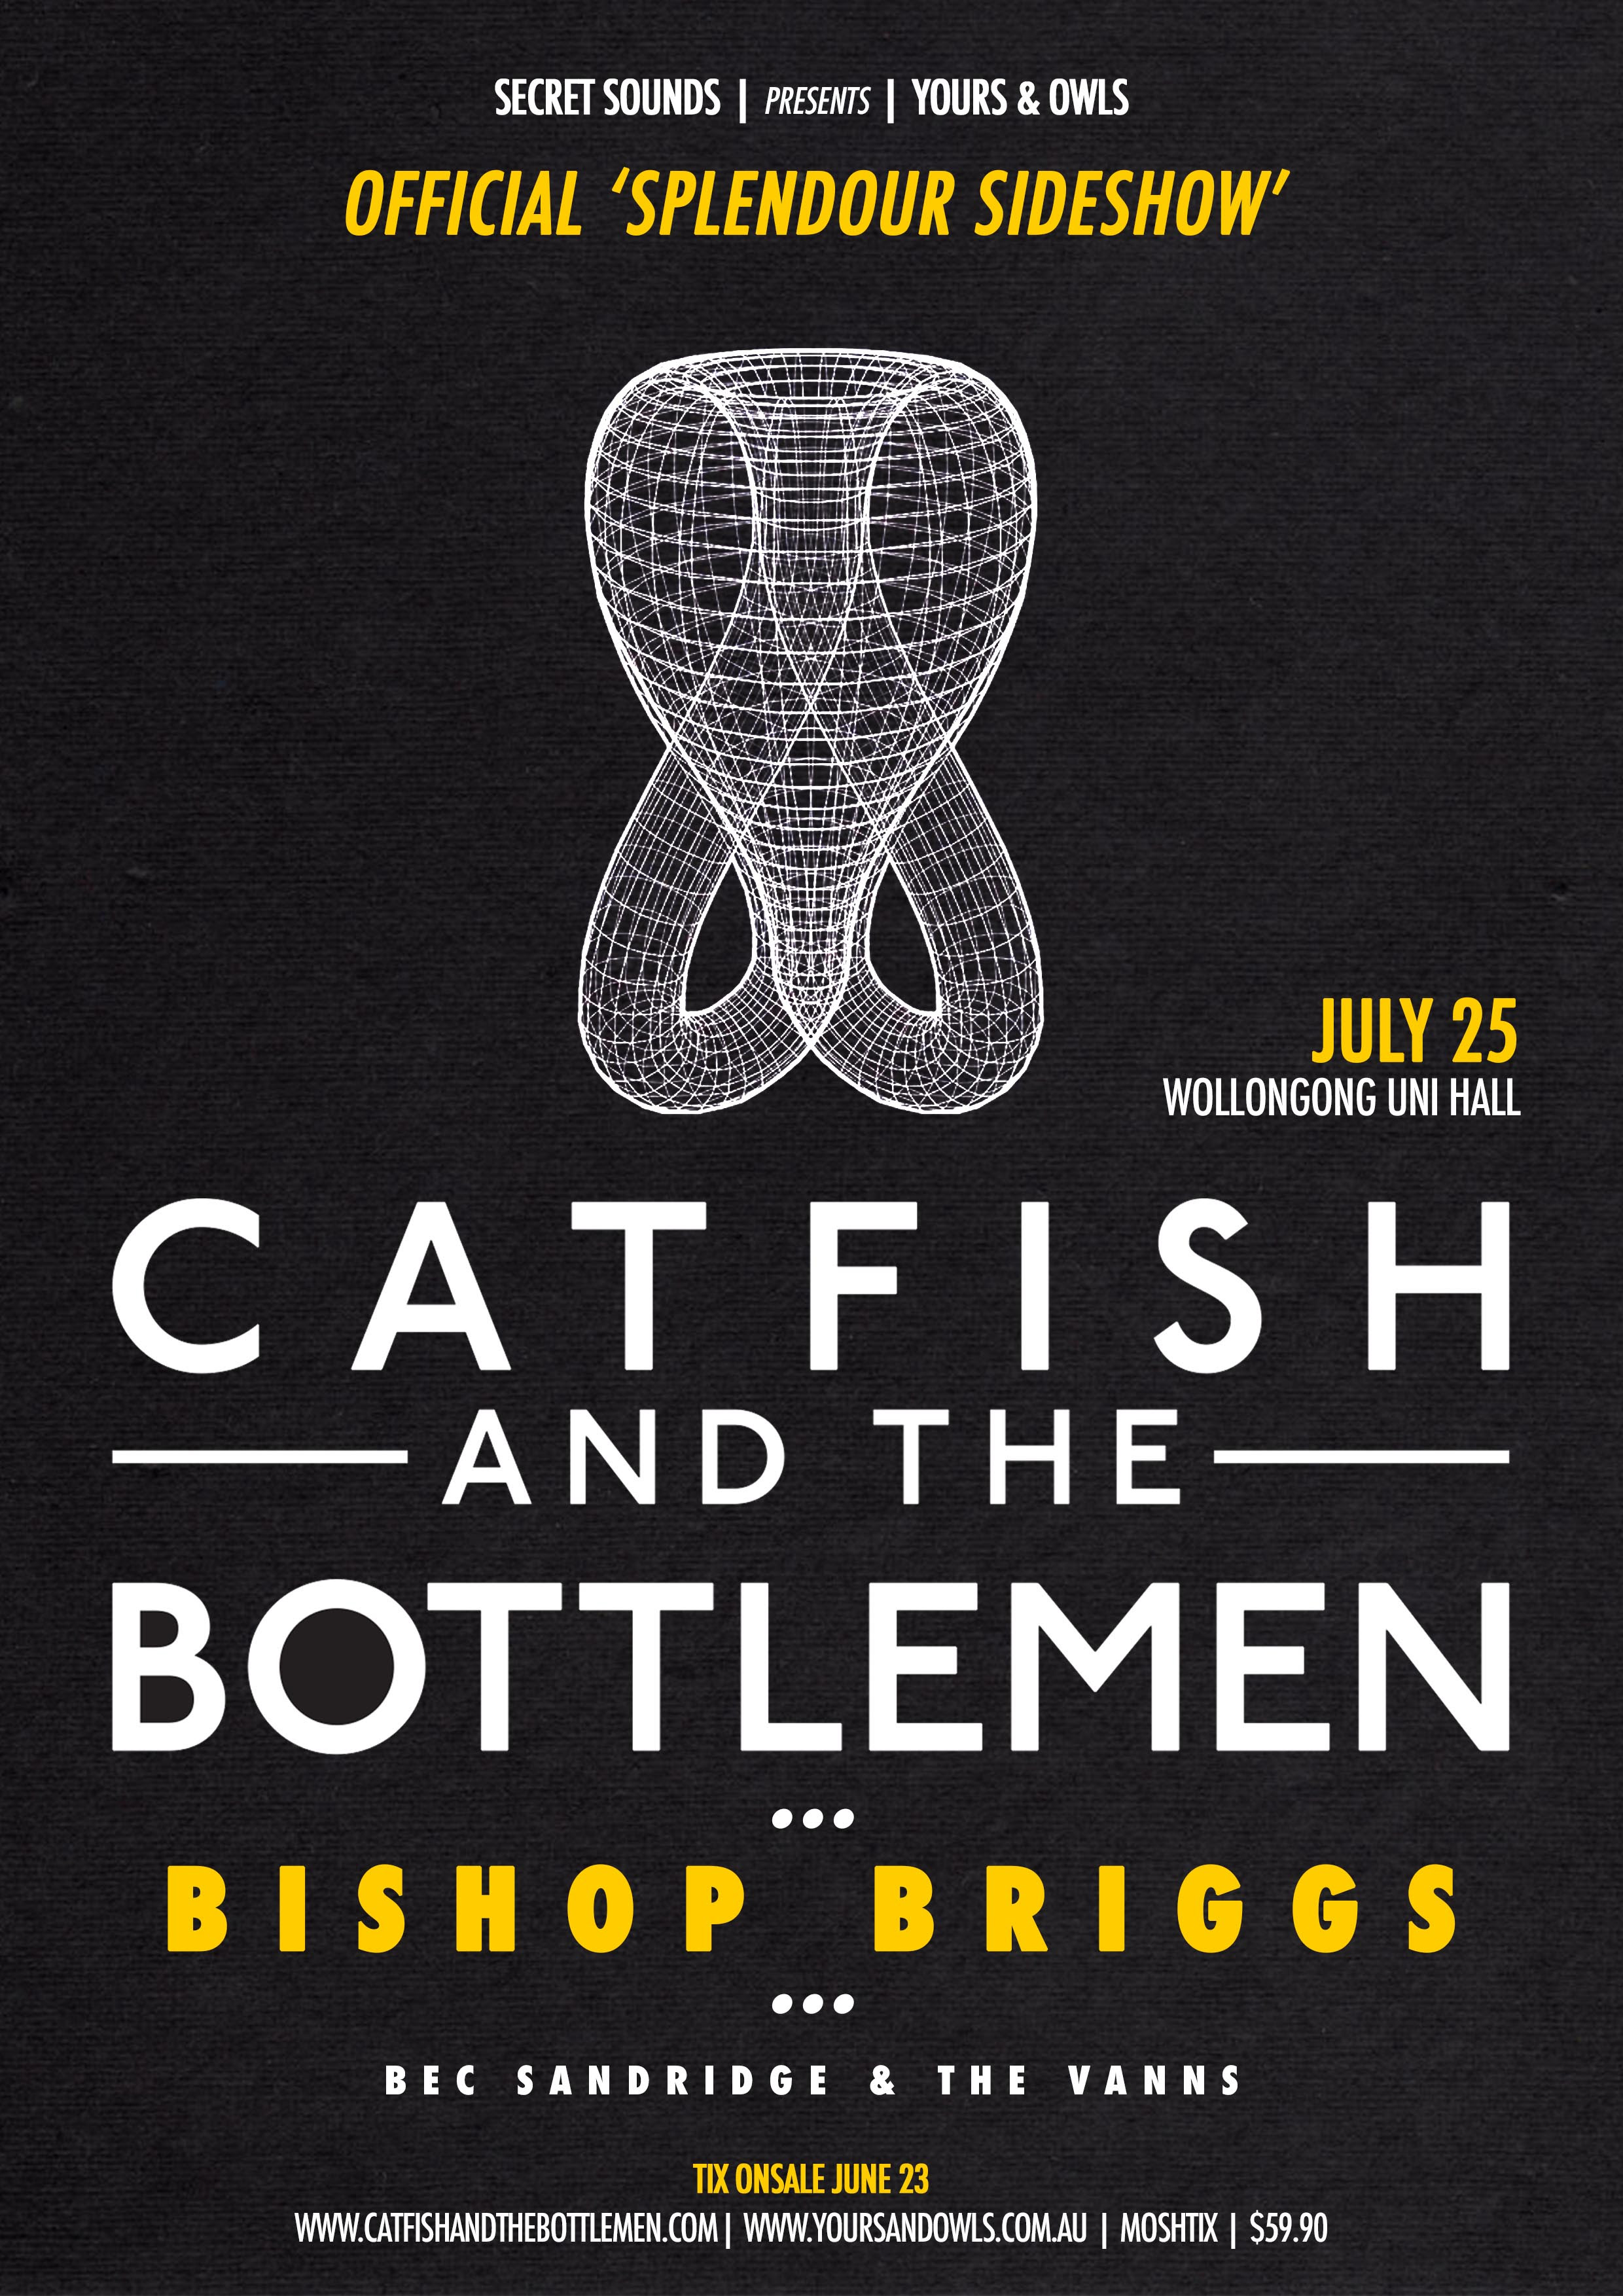 Catfish and the bottlemen bishop briggs guests announce catfish and the bottlemen bishop briggs guests announce official splendour sideshow w bec nvjuhfo Choice Image